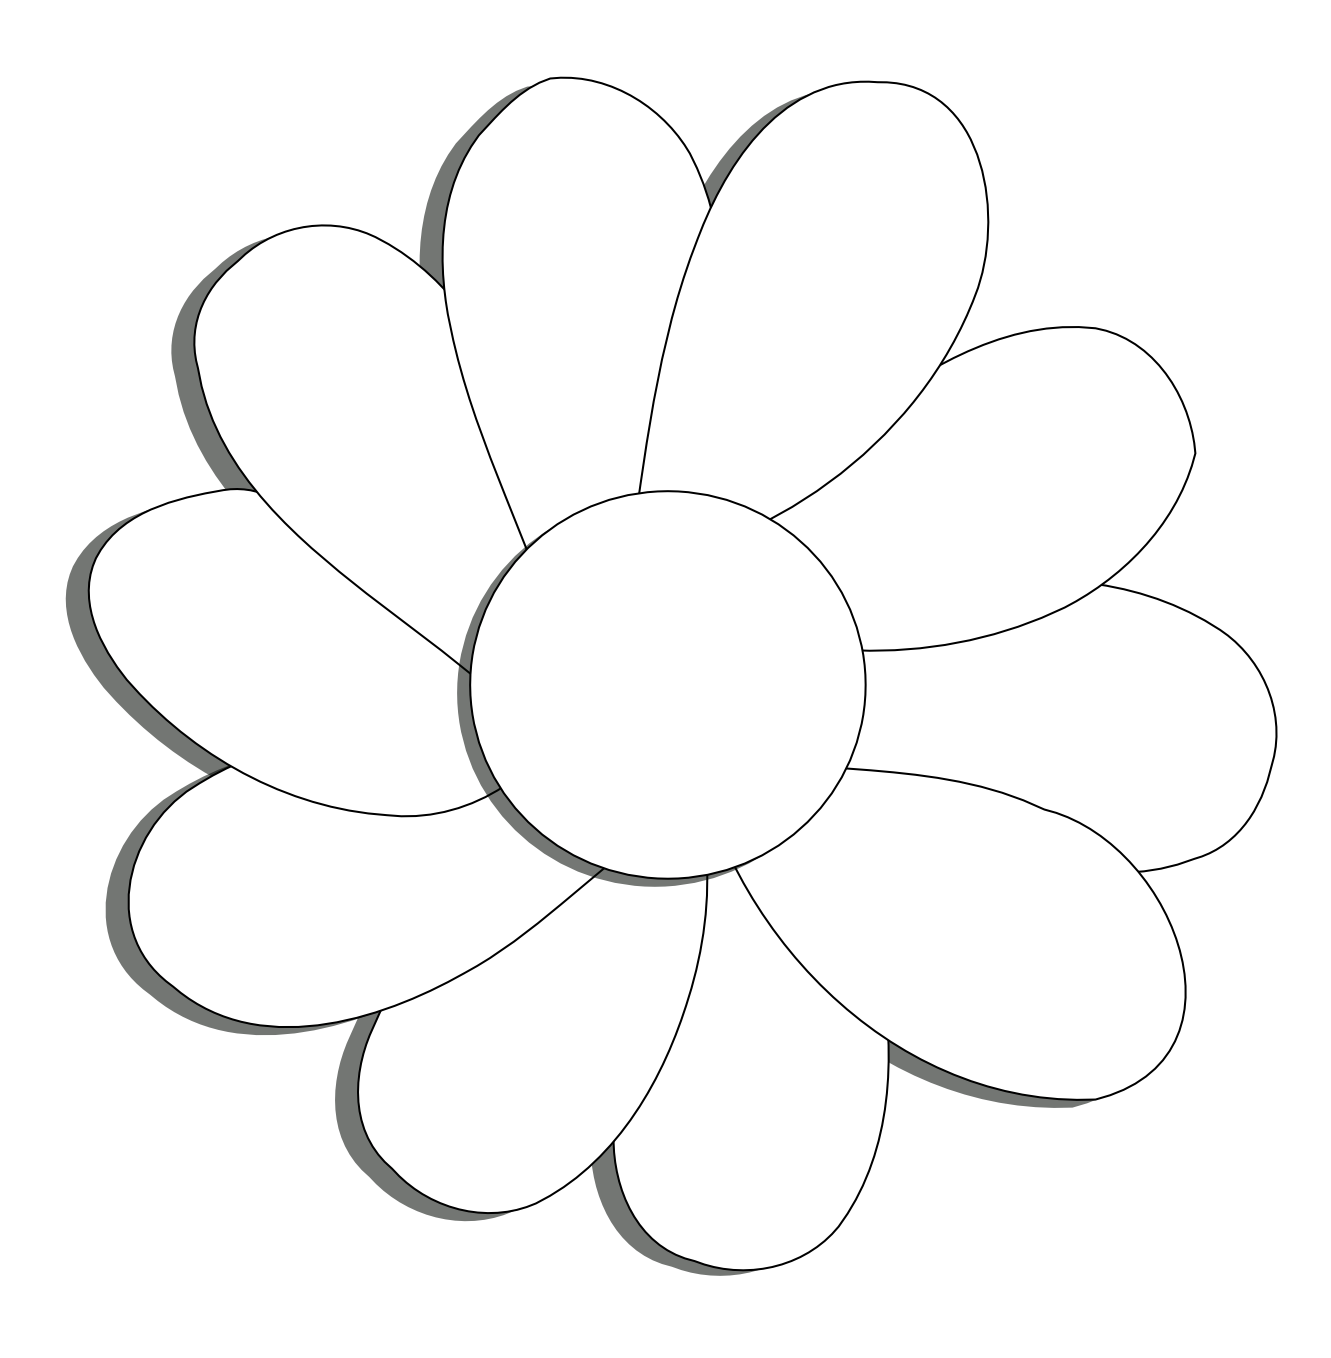 Free daisy flower outline. Daisies clipart flowerblack picture transparent library